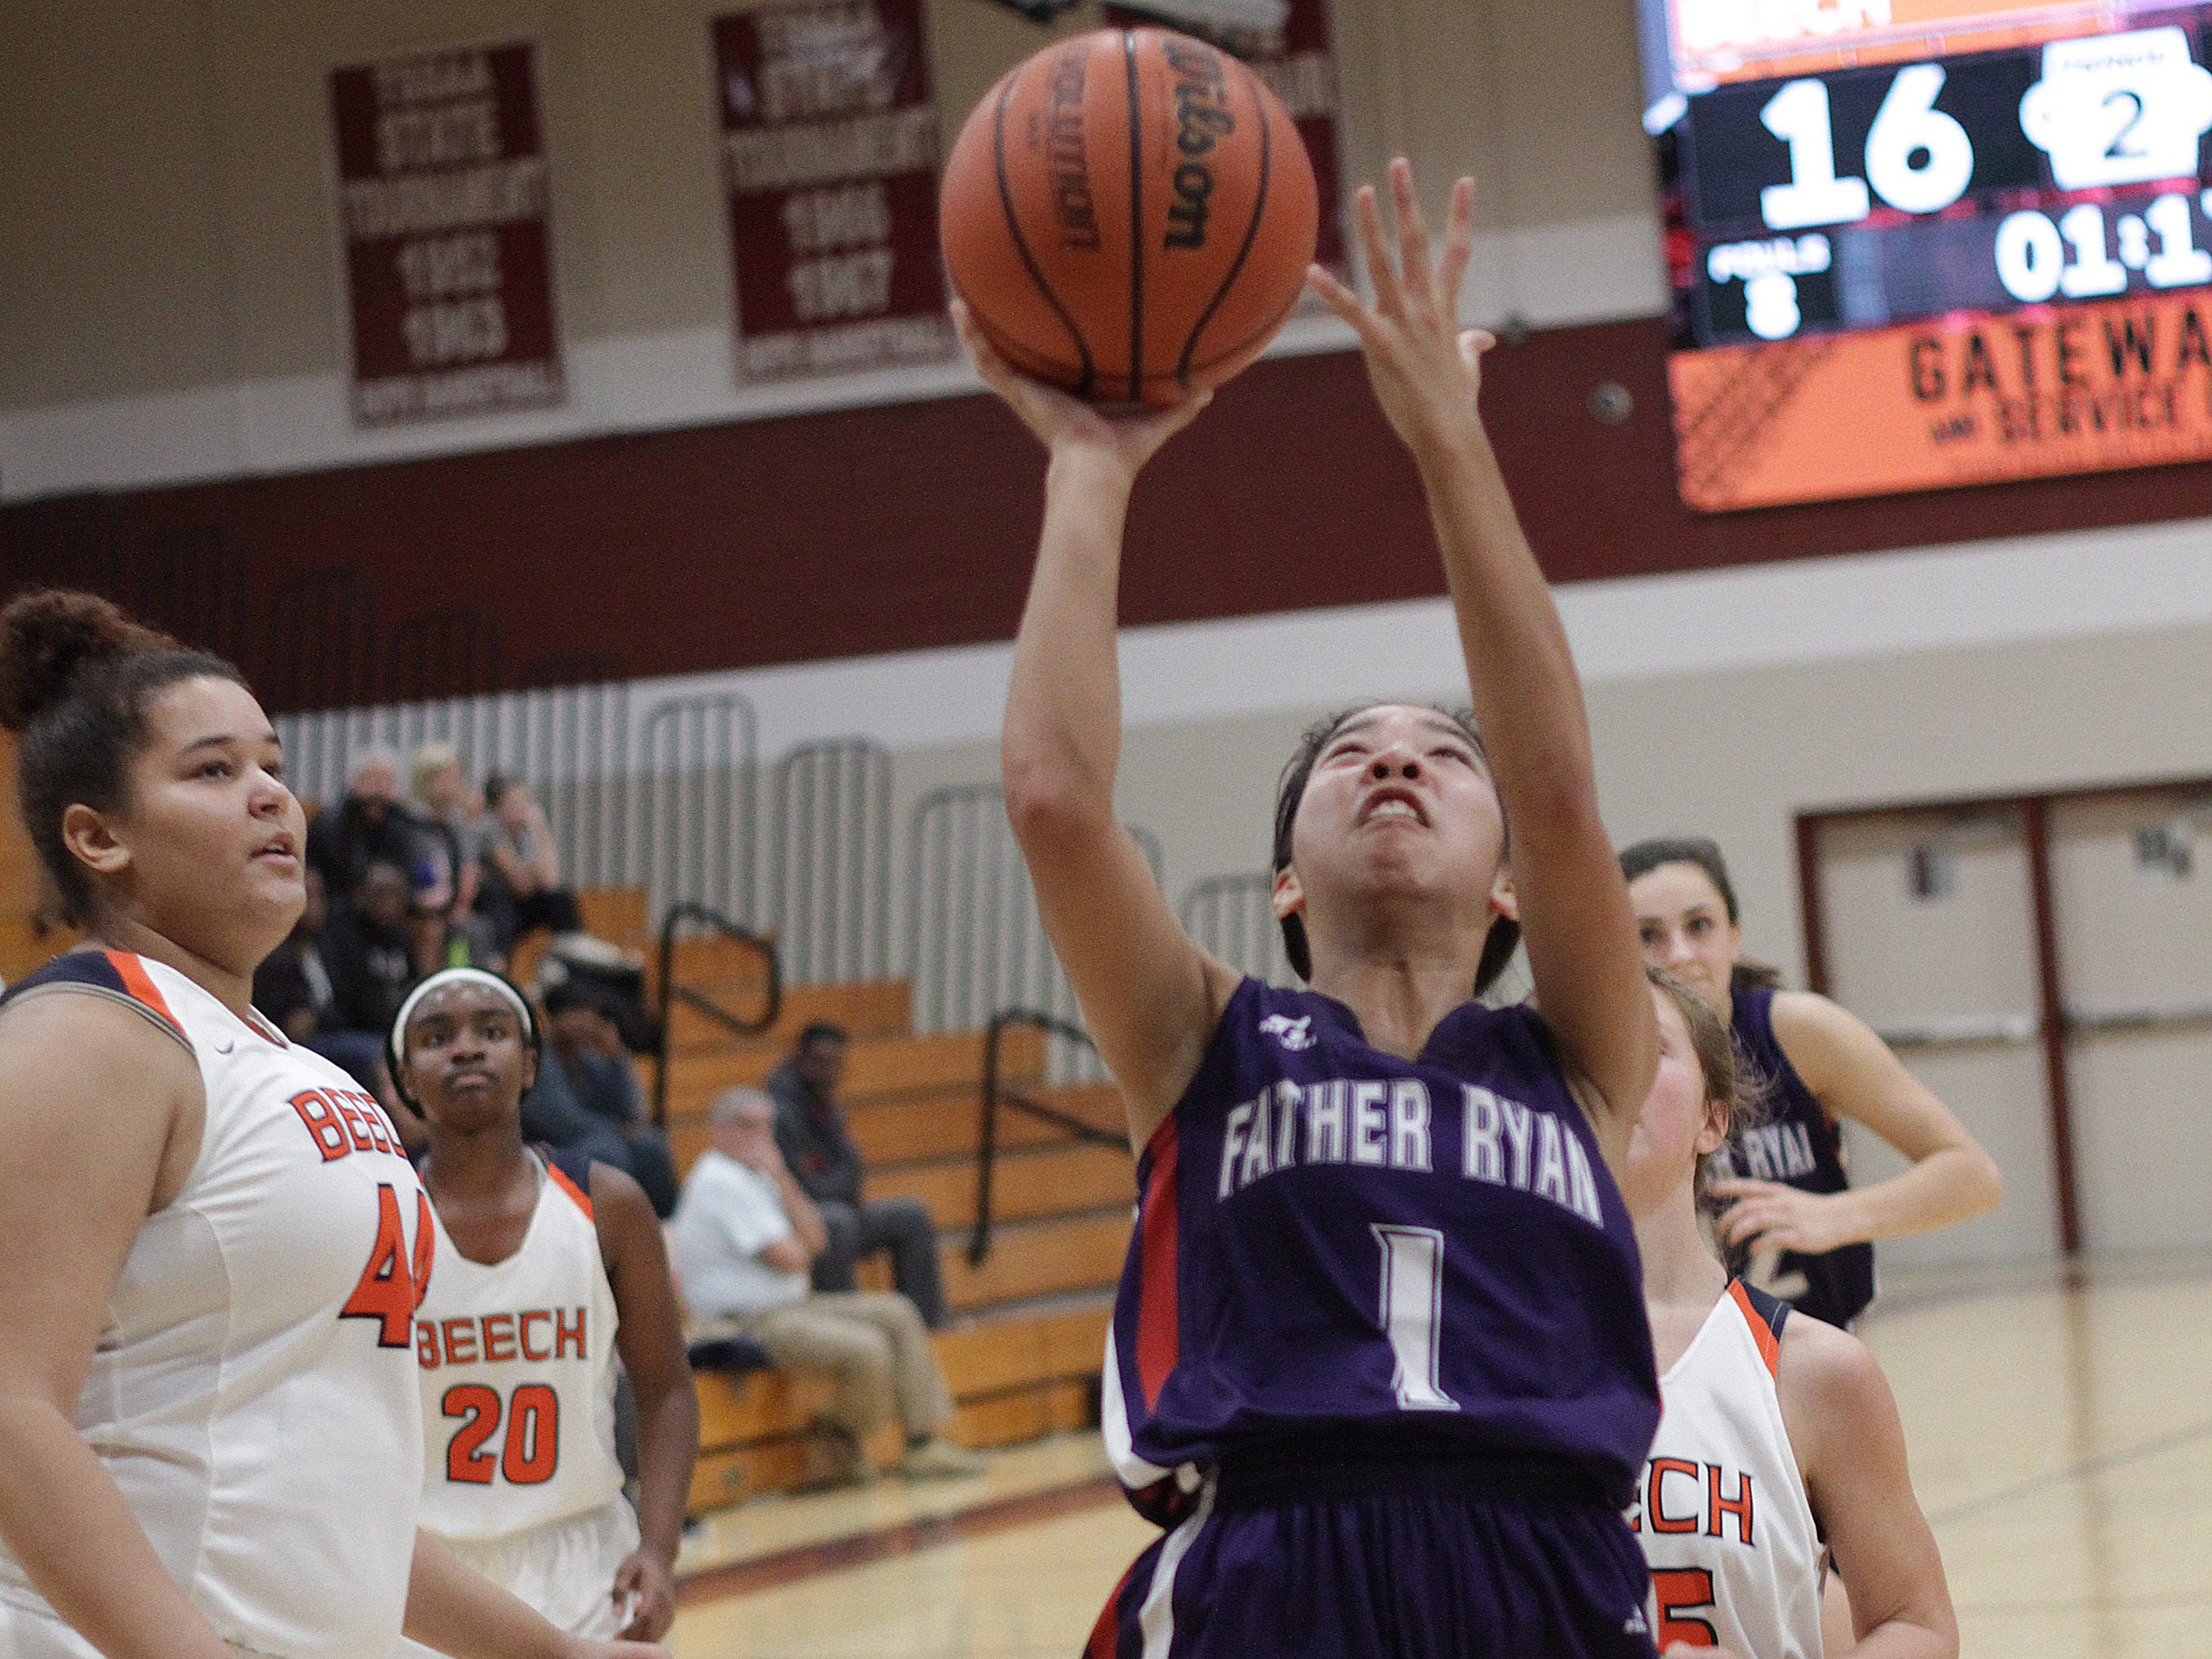 Father Ryan's Christine Quitalig shoots against Beech on Saturday, December 29, 2018.